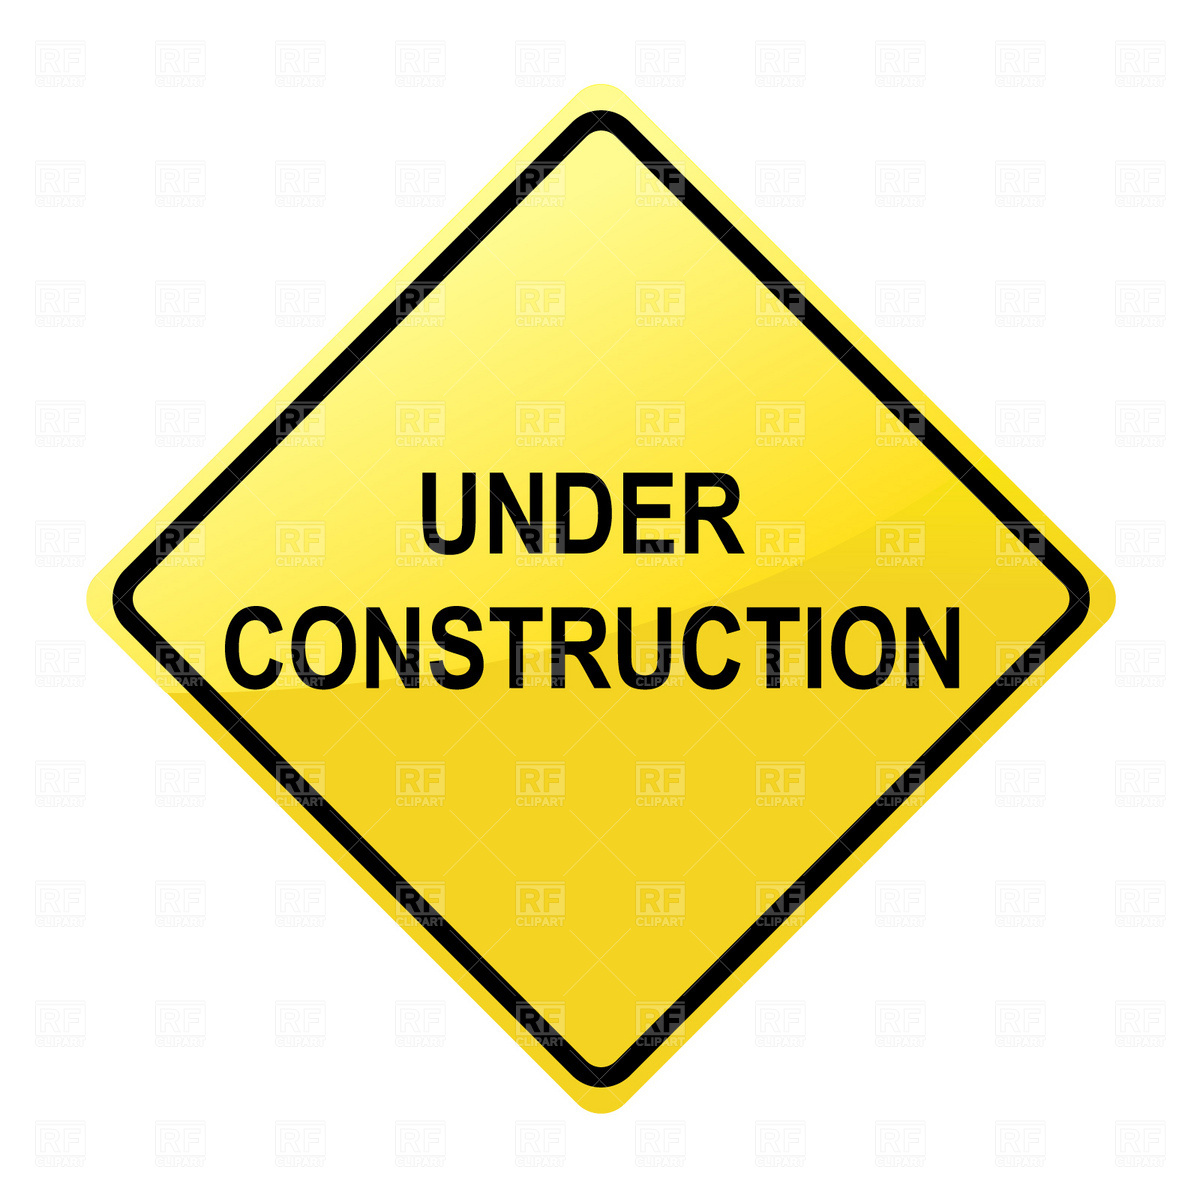 Under Construction Signs Clip Art construction signs clipart - clipart ... Under Construction Signs